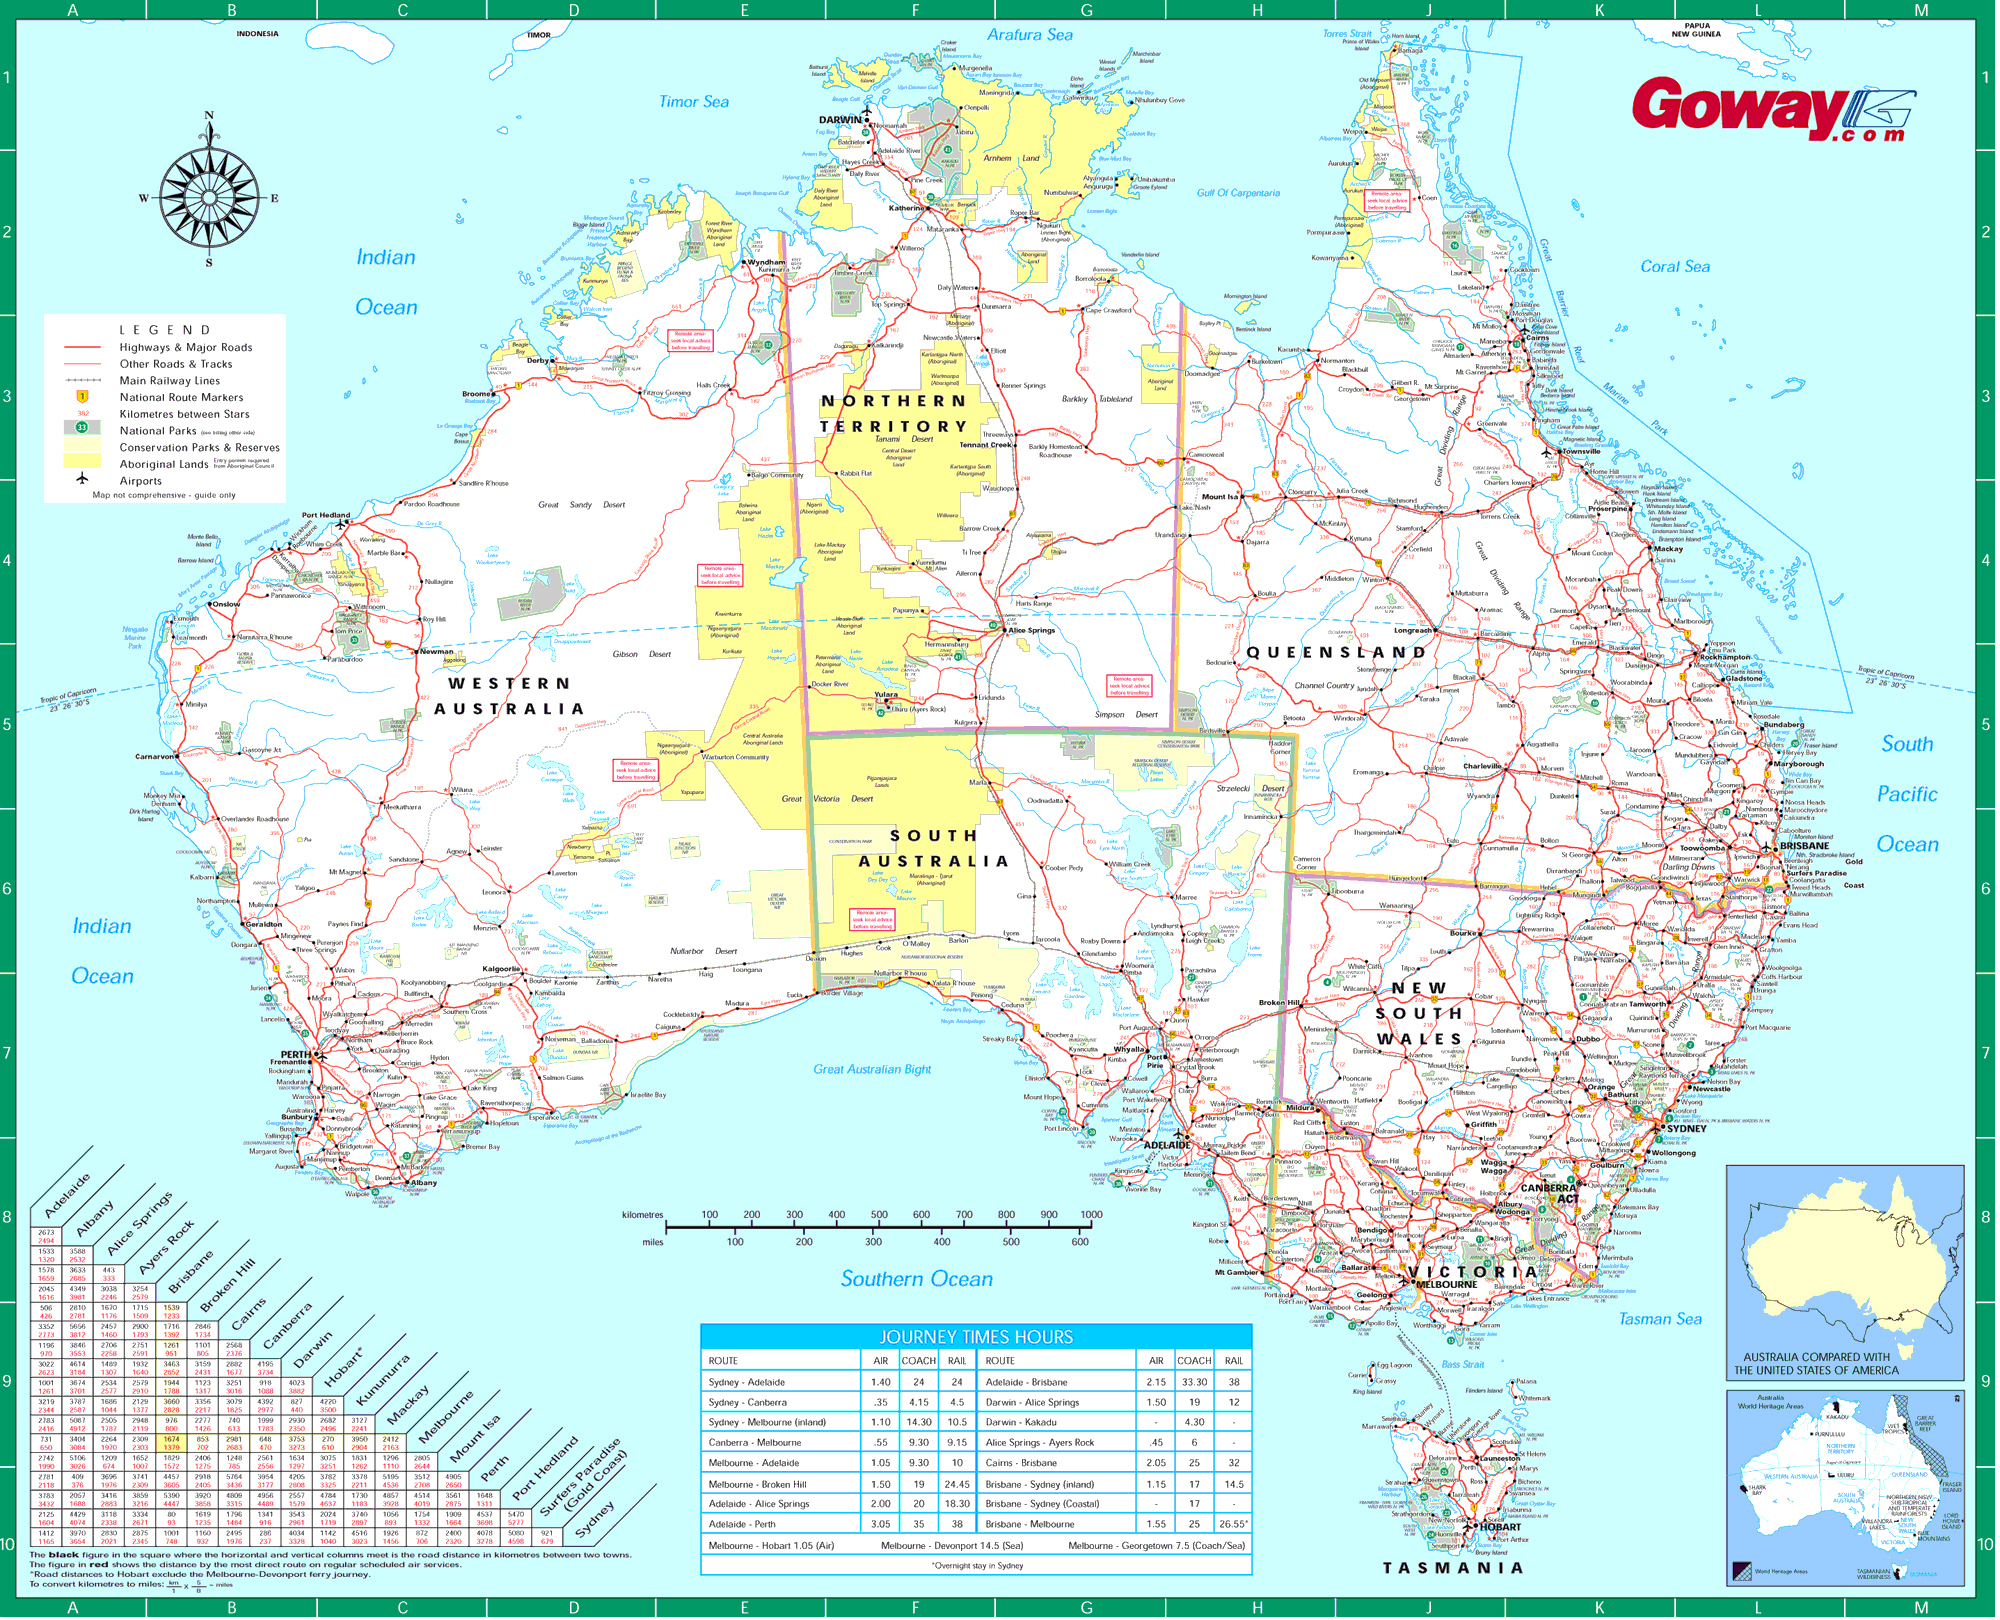 Free Road Maps Download Free Road Maps Australia | Travel Maps And - Free Printable Driving Maps